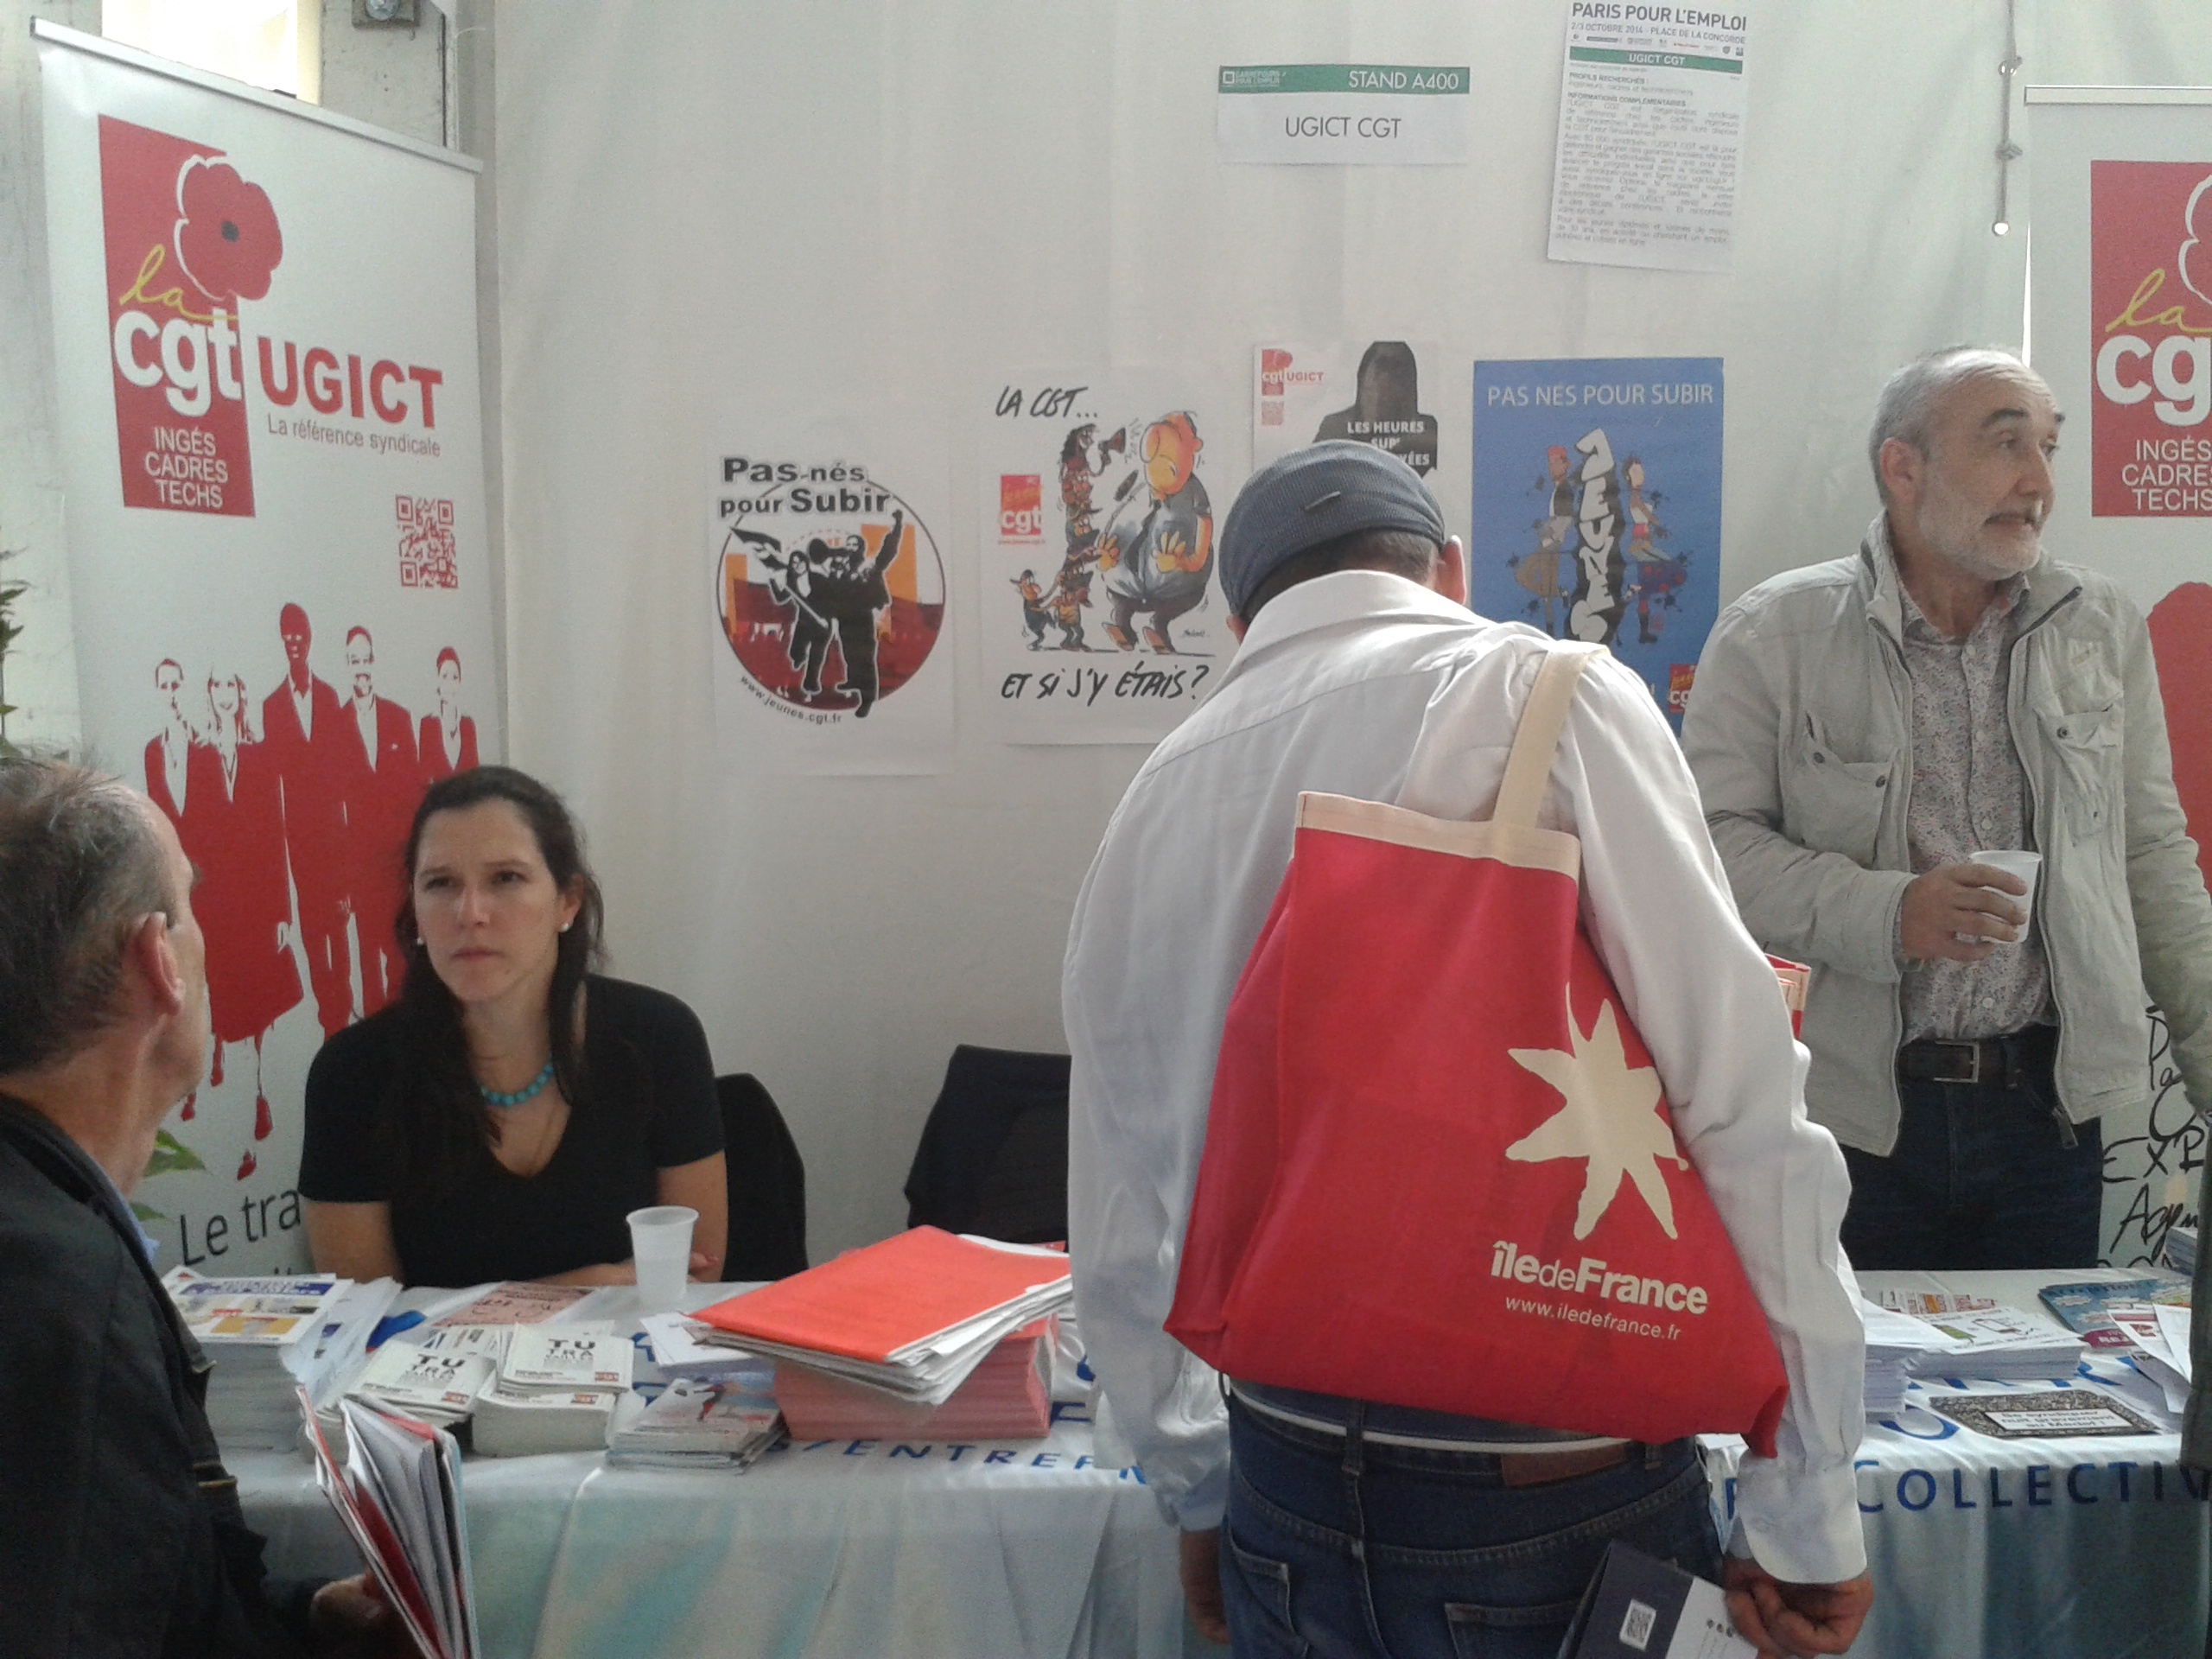 salon emploi oct2014 ugict cgt paris